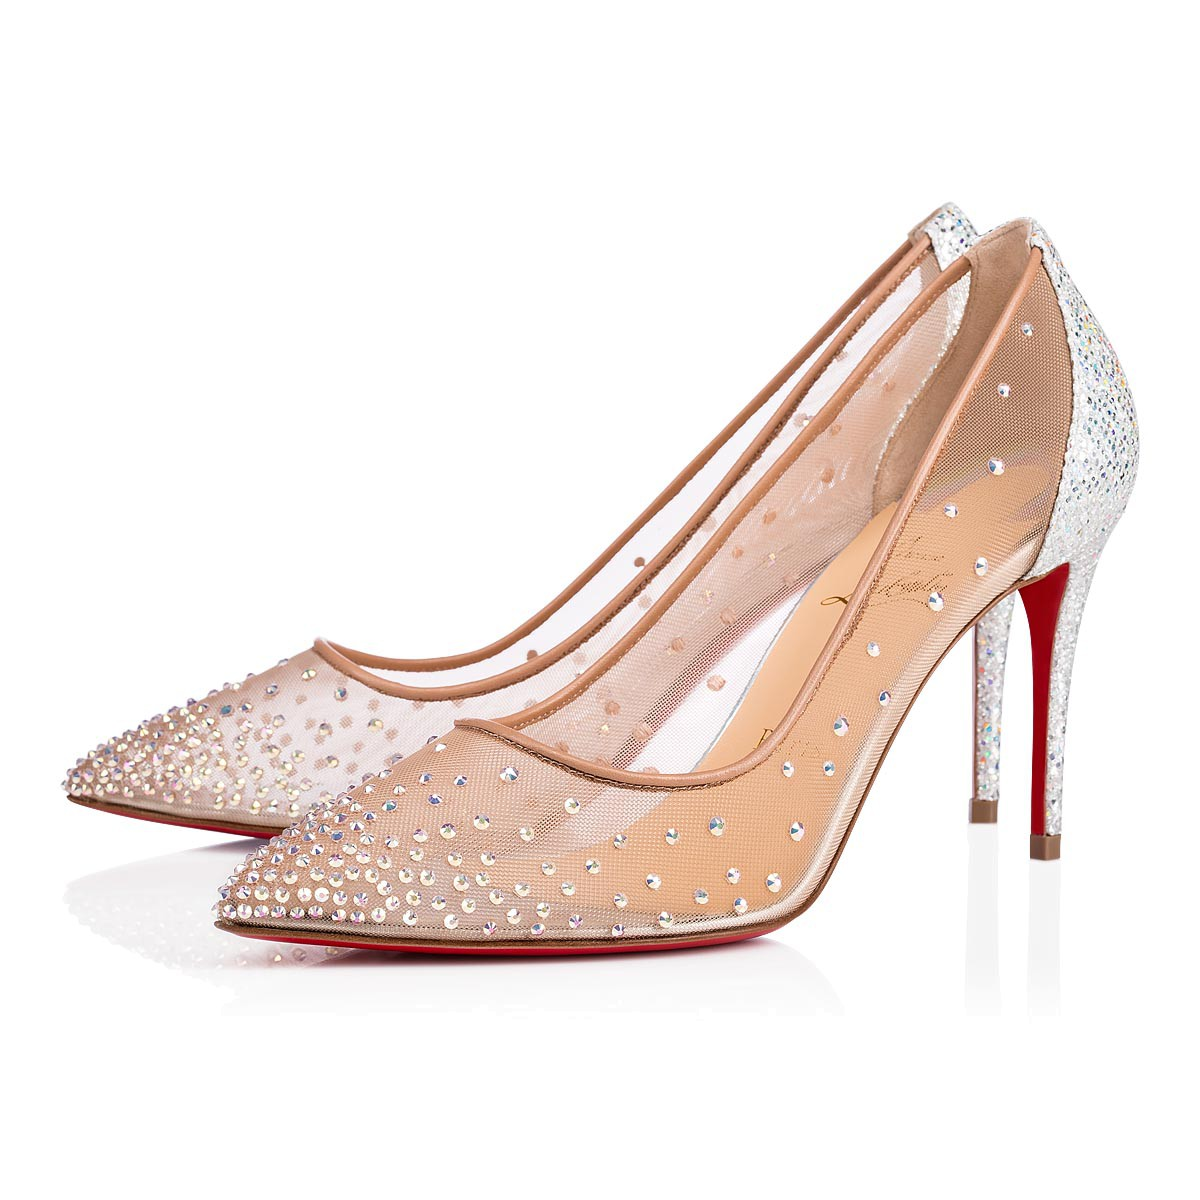 鞋履 - Follies Strass - Christian Louboutin